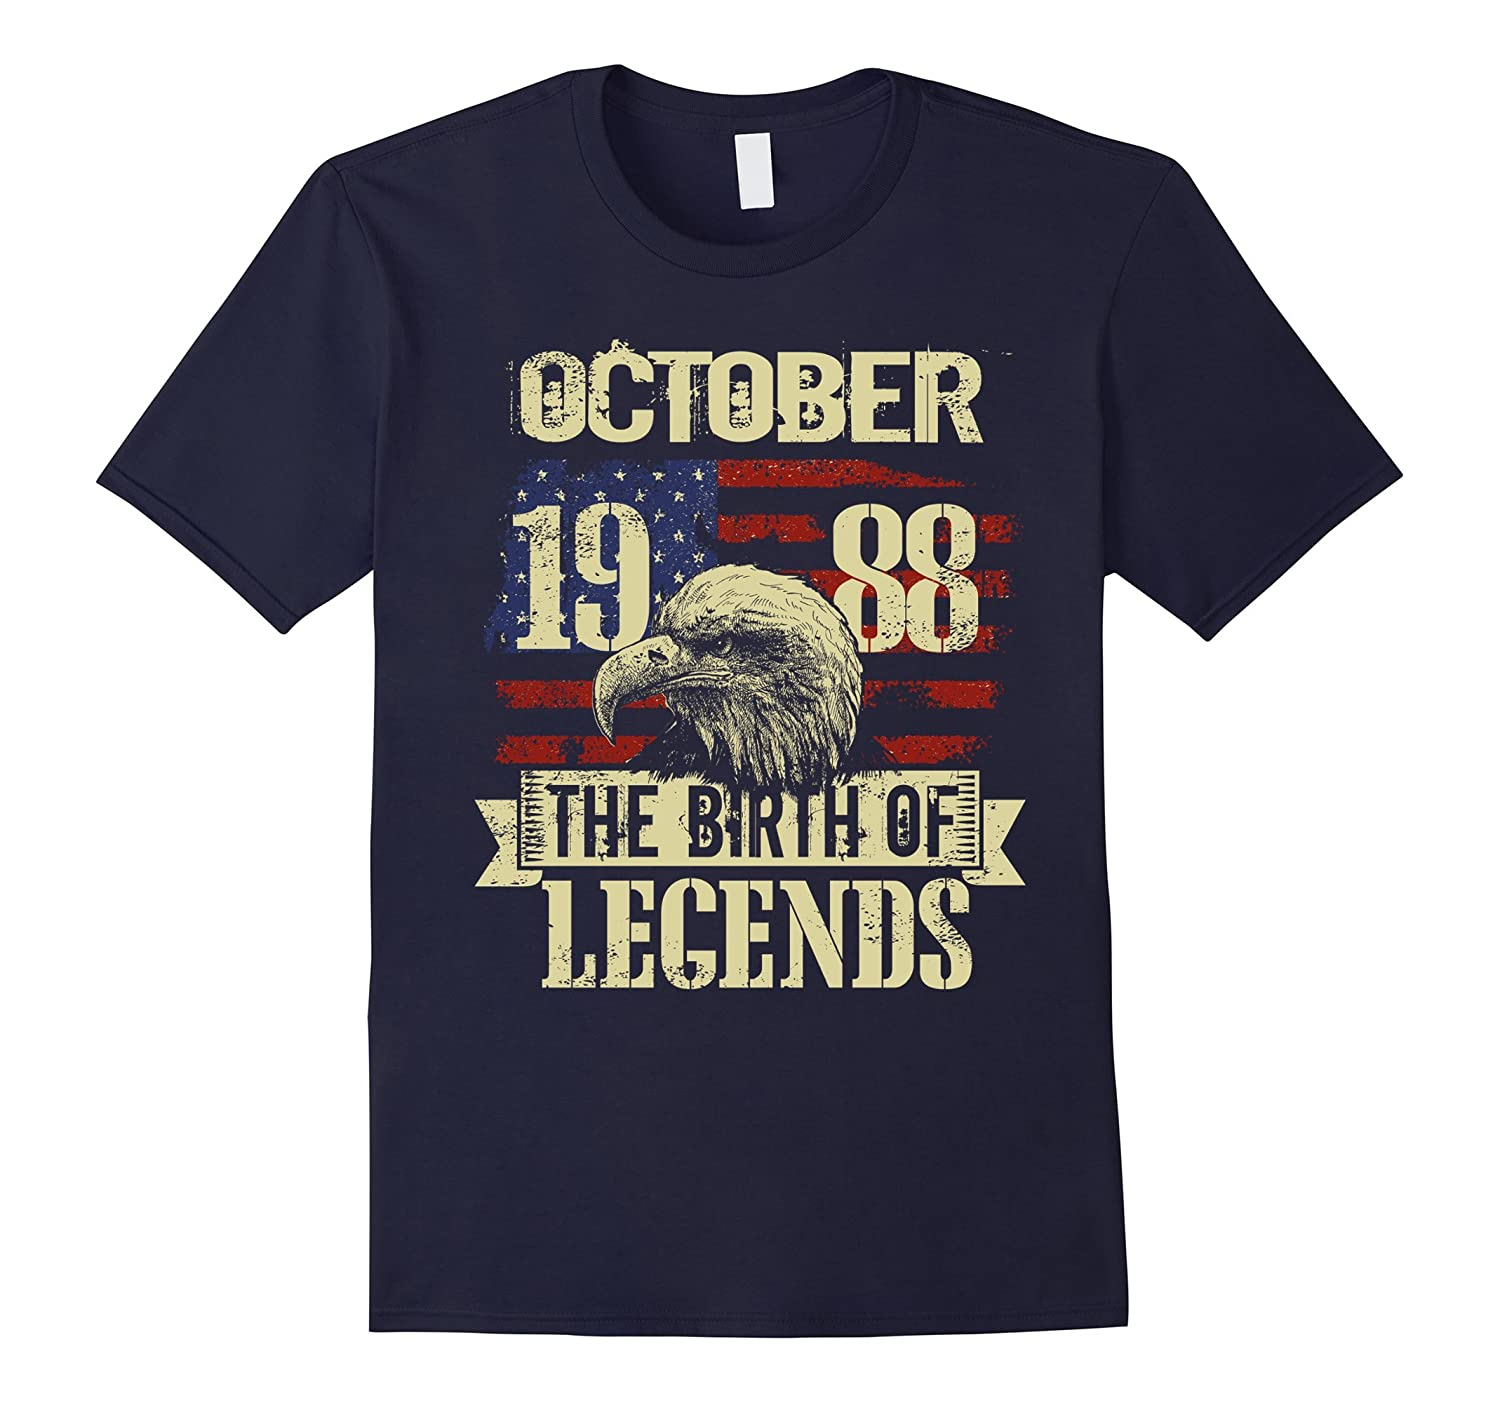 1988 OCTOBER OCT The Birth Of Legends Gift 29 Yrs Years Old-Art